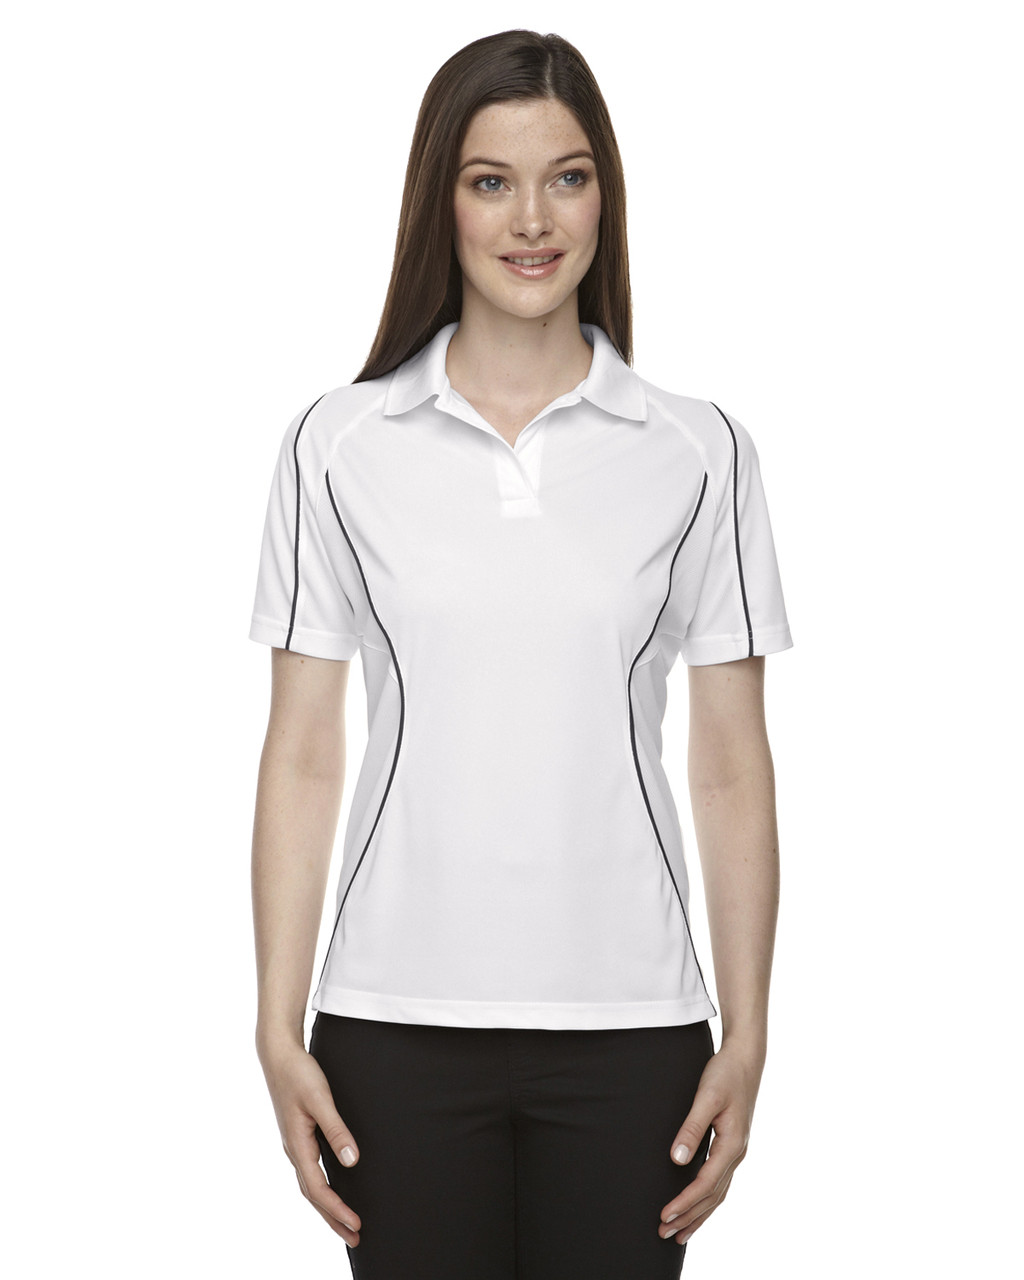 White 75107 Ash City - Extreme Eperformance Ladies' Velocity Colourblock Polo Shirt with Piping